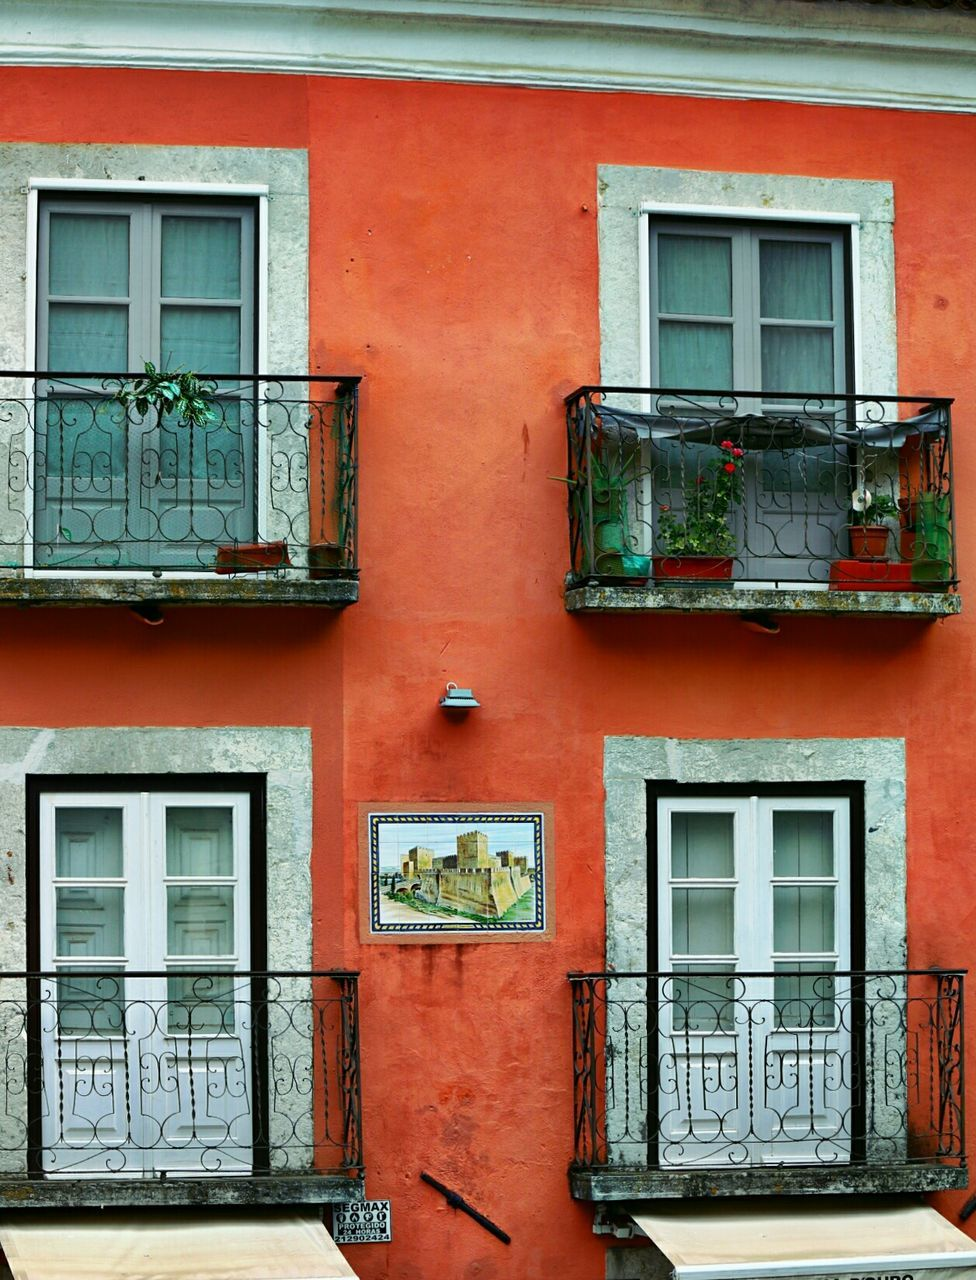 window, building exterior, architecture, built structure, door, no people, residential building, day, house, outdoors, red, window box